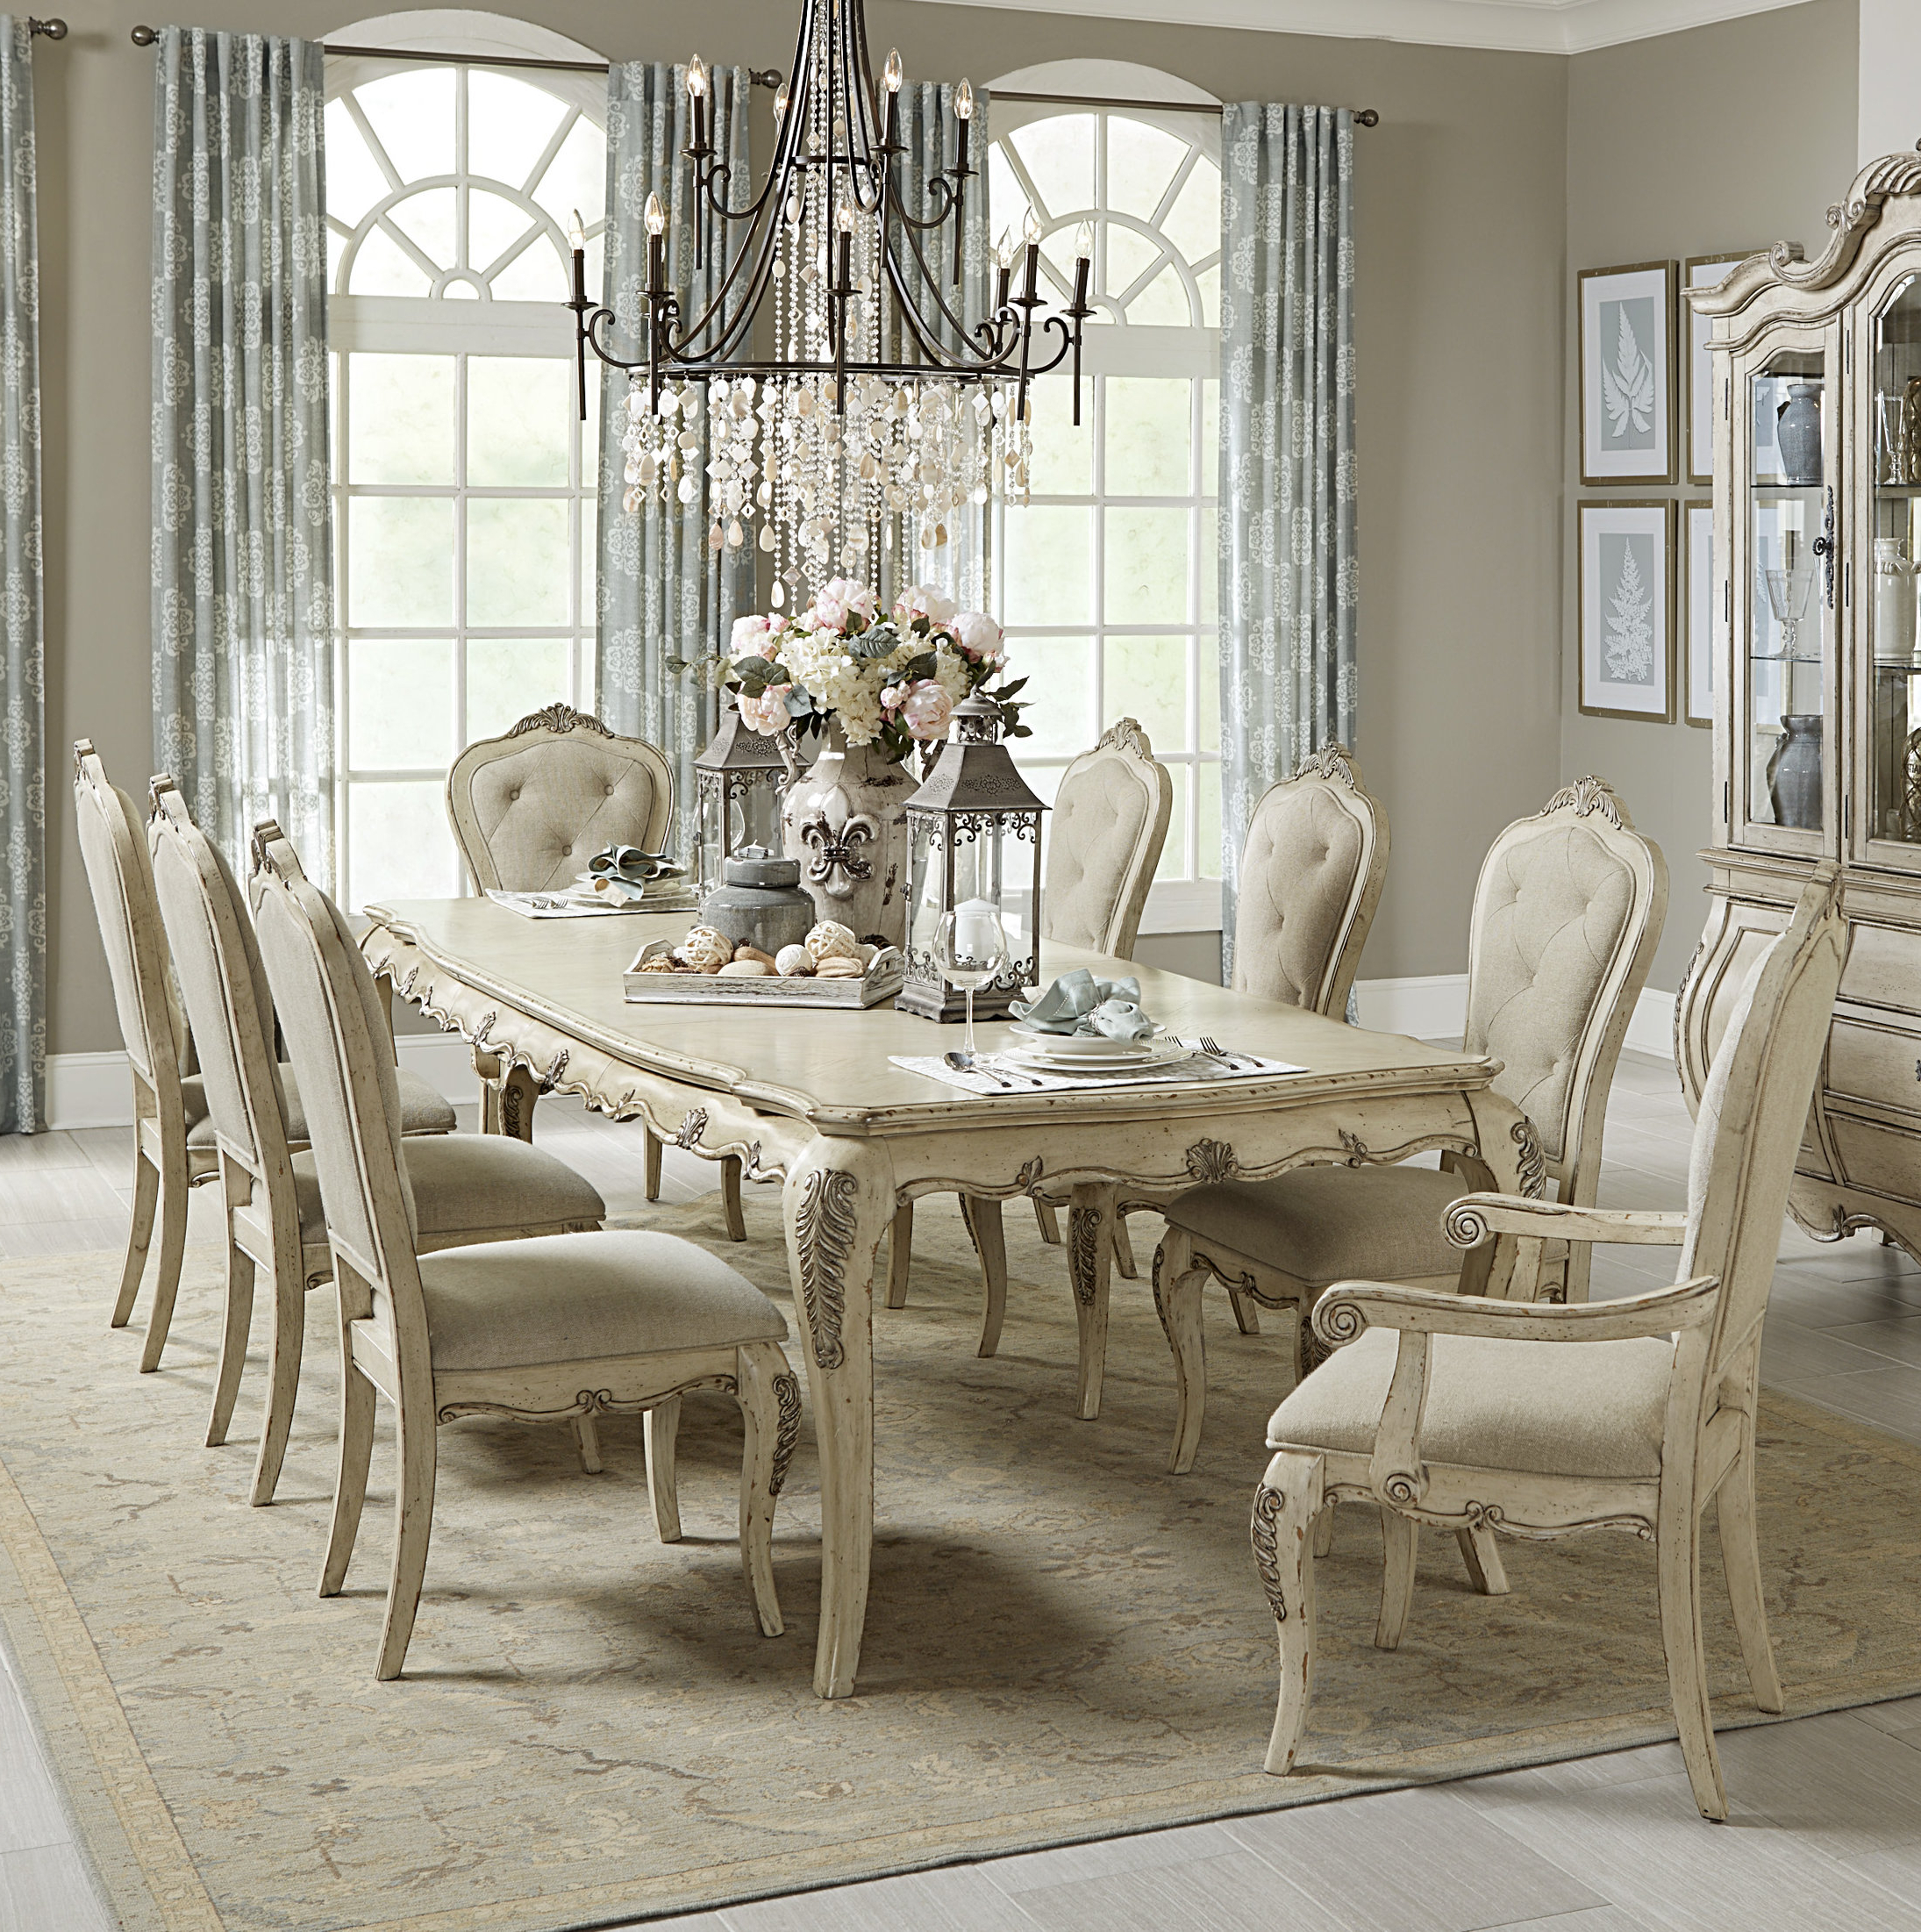 Wayfair Intended For Widely Used Mitzel 3 Piece Dining Sets (View 19 of 25)